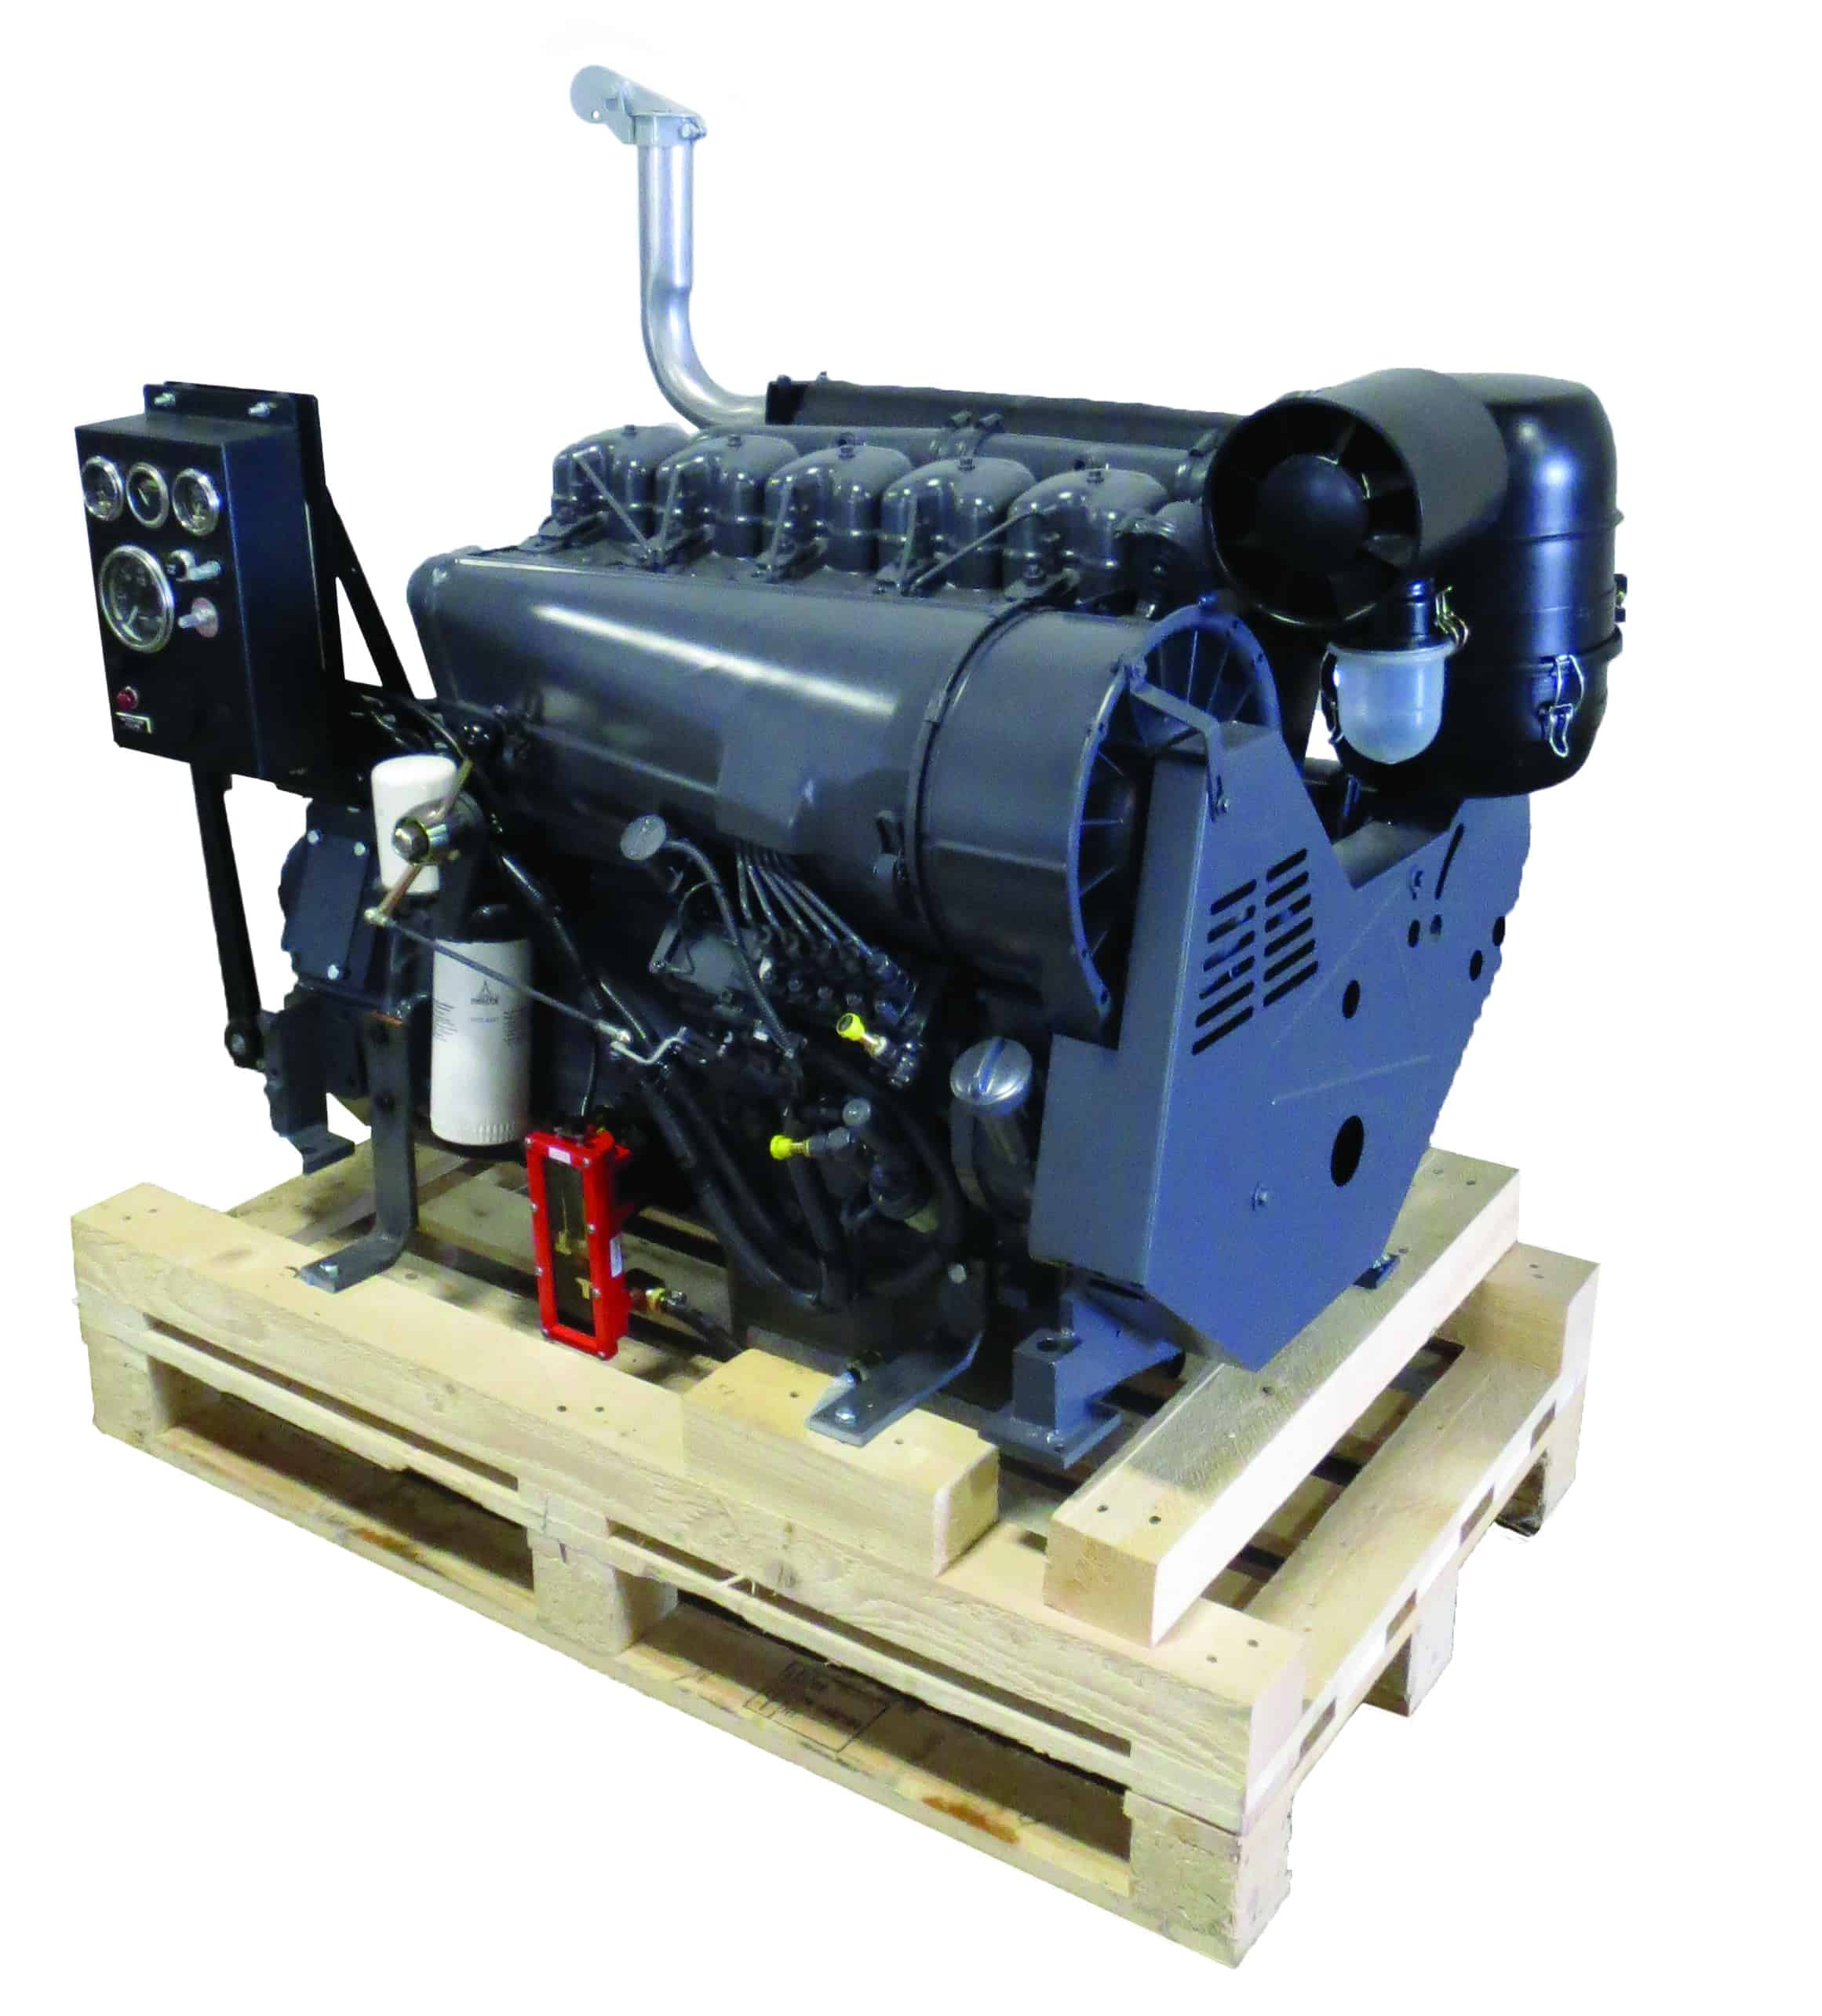 d 914 irrigation power units deutz power centers 3 to 6 cylinder naturally aspirated diesel engines 43 174 hp at 2300 rpm tier 3 and tier 4 i